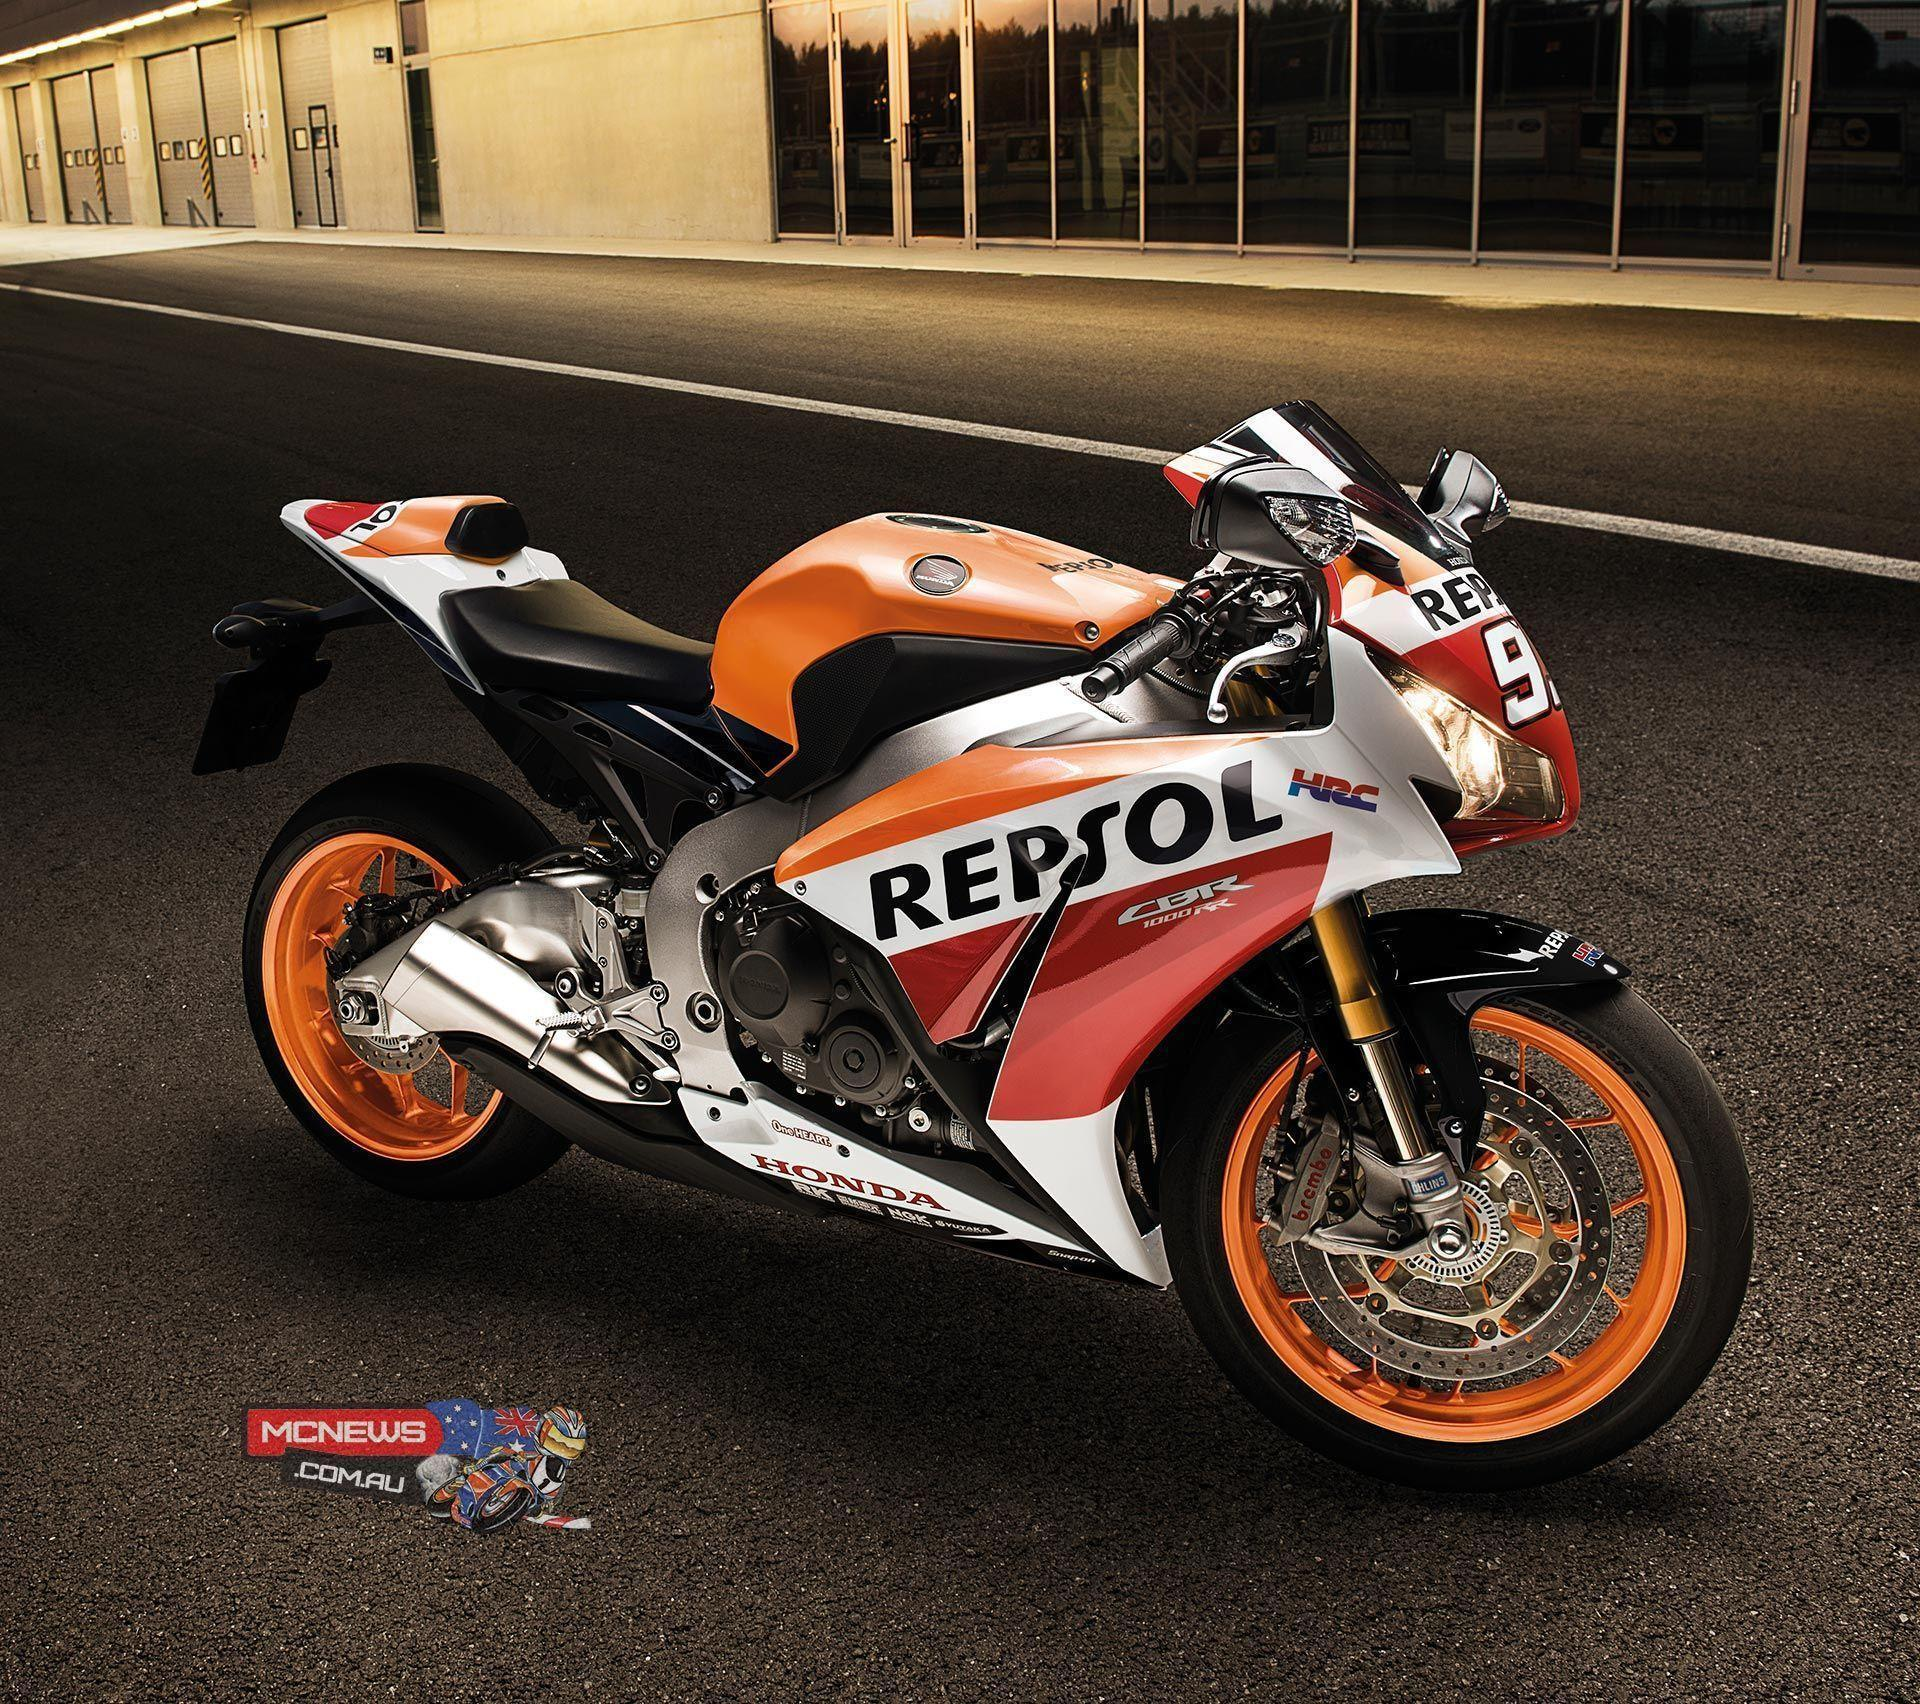 cbrrr repsol  hd wallpapers wallpaper cave